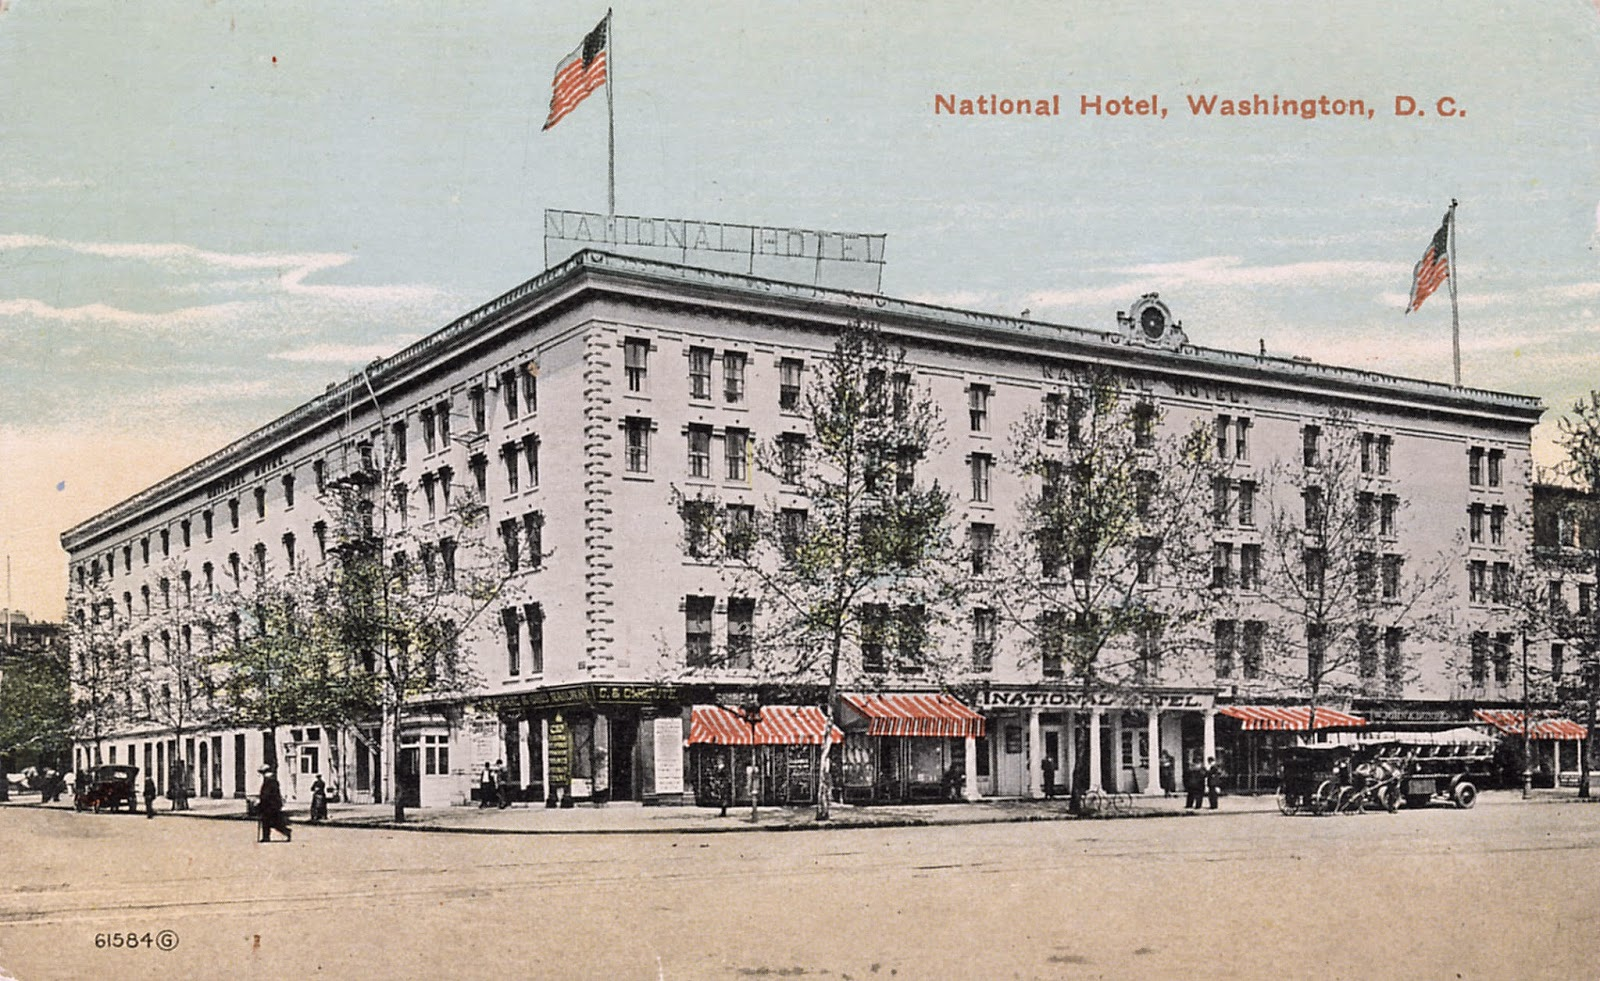 The National Hotel in 1910.  Opened by John Gadsby in the 1820s and became the preferred location for Southern visitors to the nation's capital.